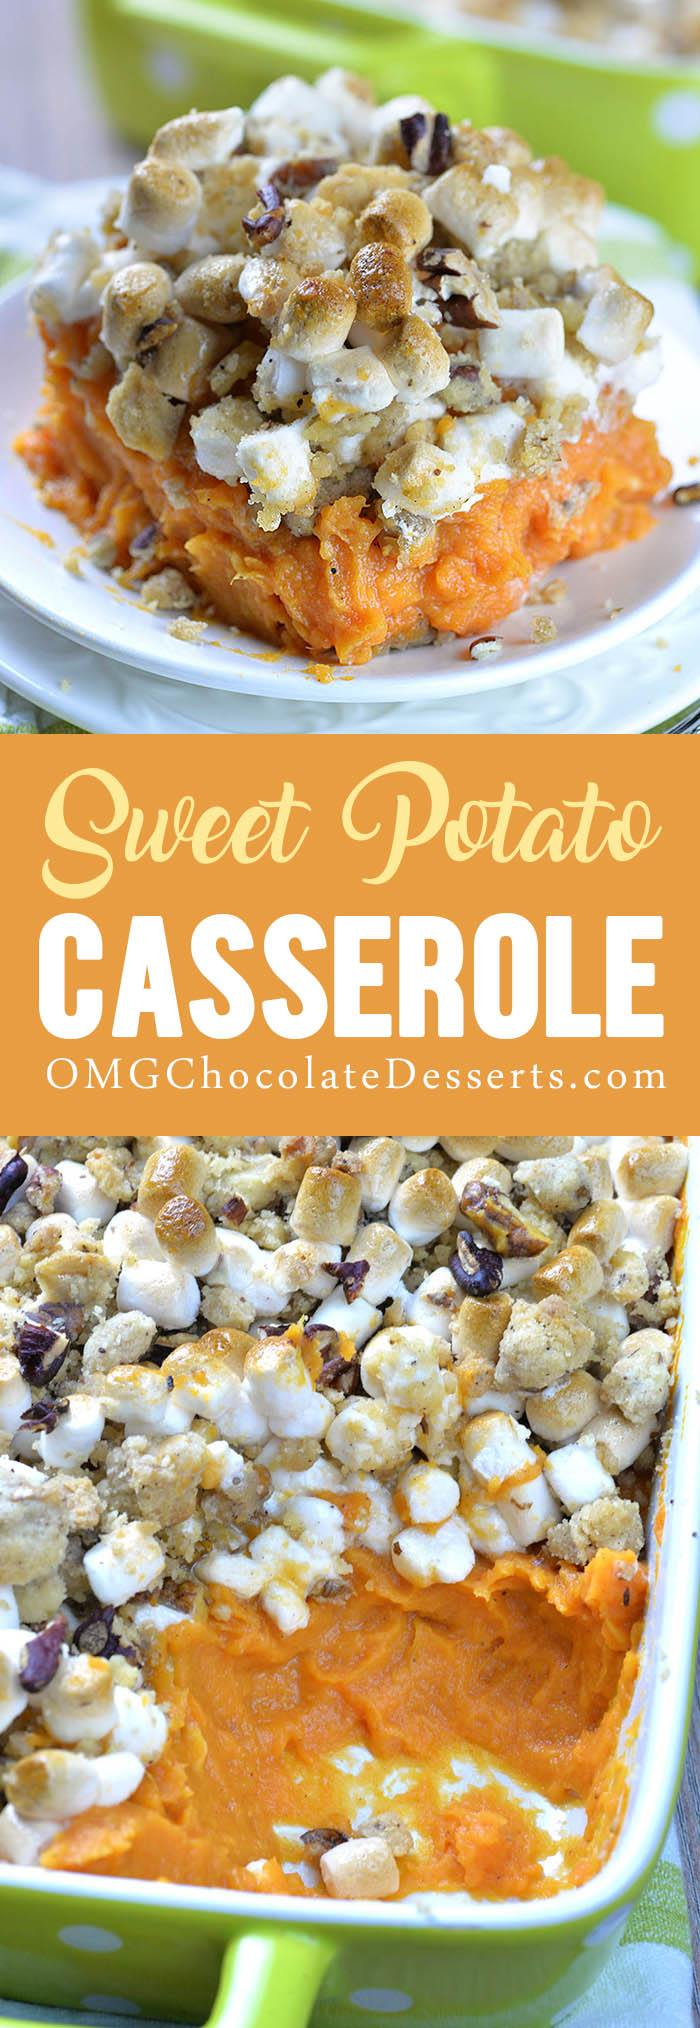 Sweet Potato Casserole Recipe with marshmallows and pecan streusel topping is family favorite Thanksgiving side dish.